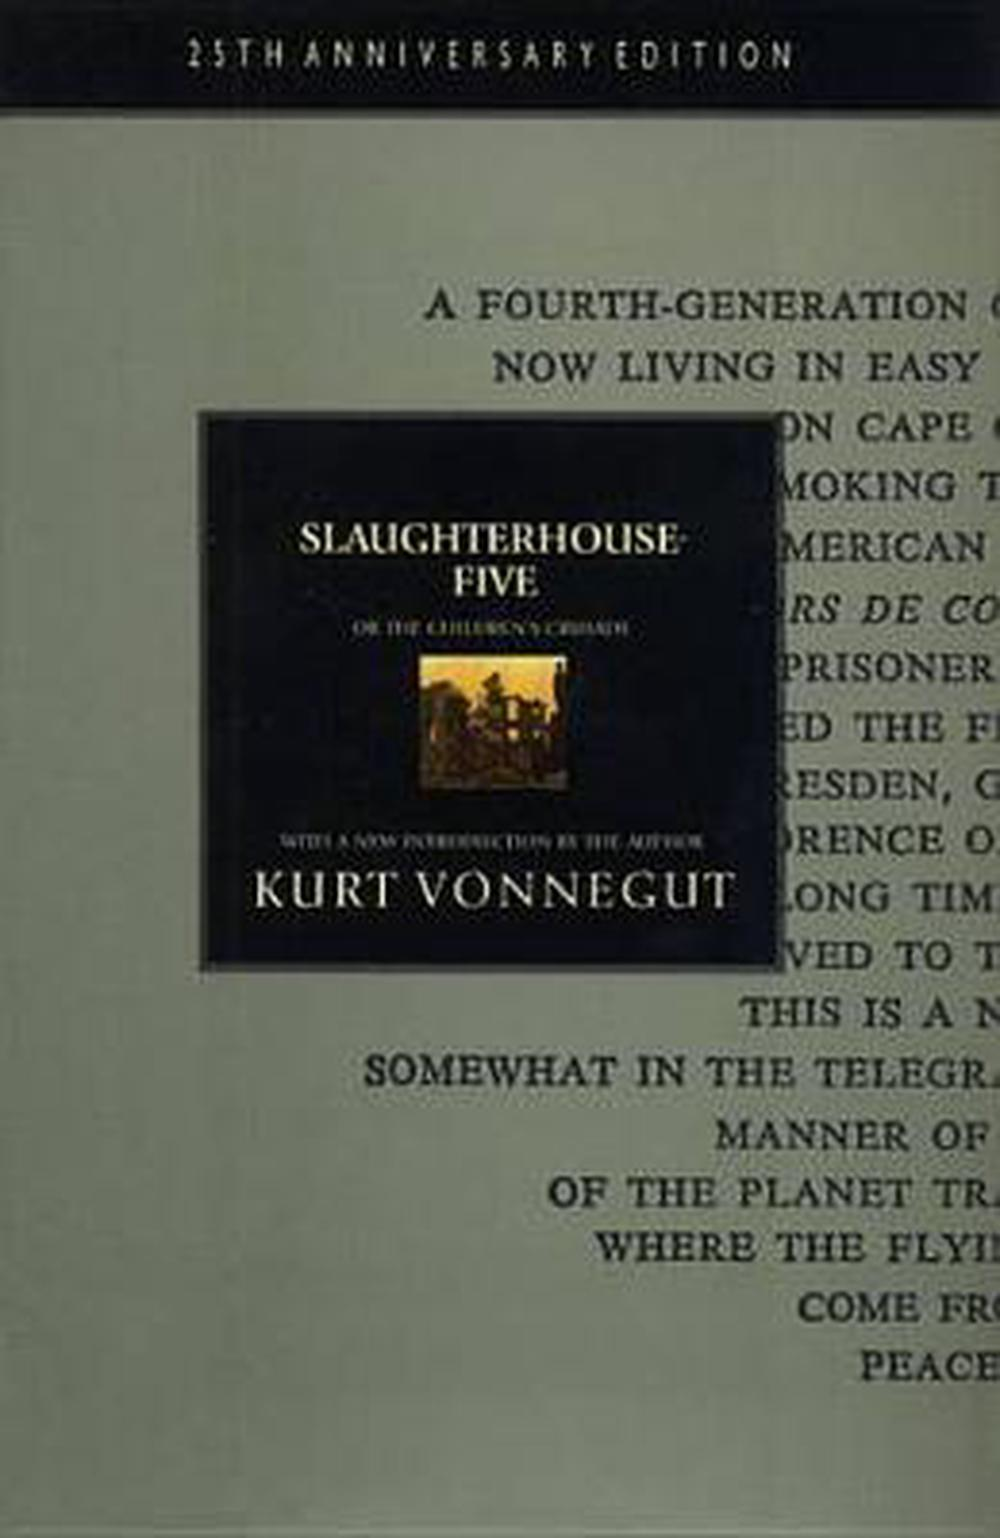 an analysis of destruction and war in slaughterhouse five by kurt vonnegut jr Persona incites analysis of the essential value of lies as contrasted with  nearly  halfway through the novel slaughterhouse-five, kurt vonnegut, jr   justifications, bringing the essential components of war to readers' attention   nations involved, but the wounded men, the bullets, the fighter planes, and the  destruction.